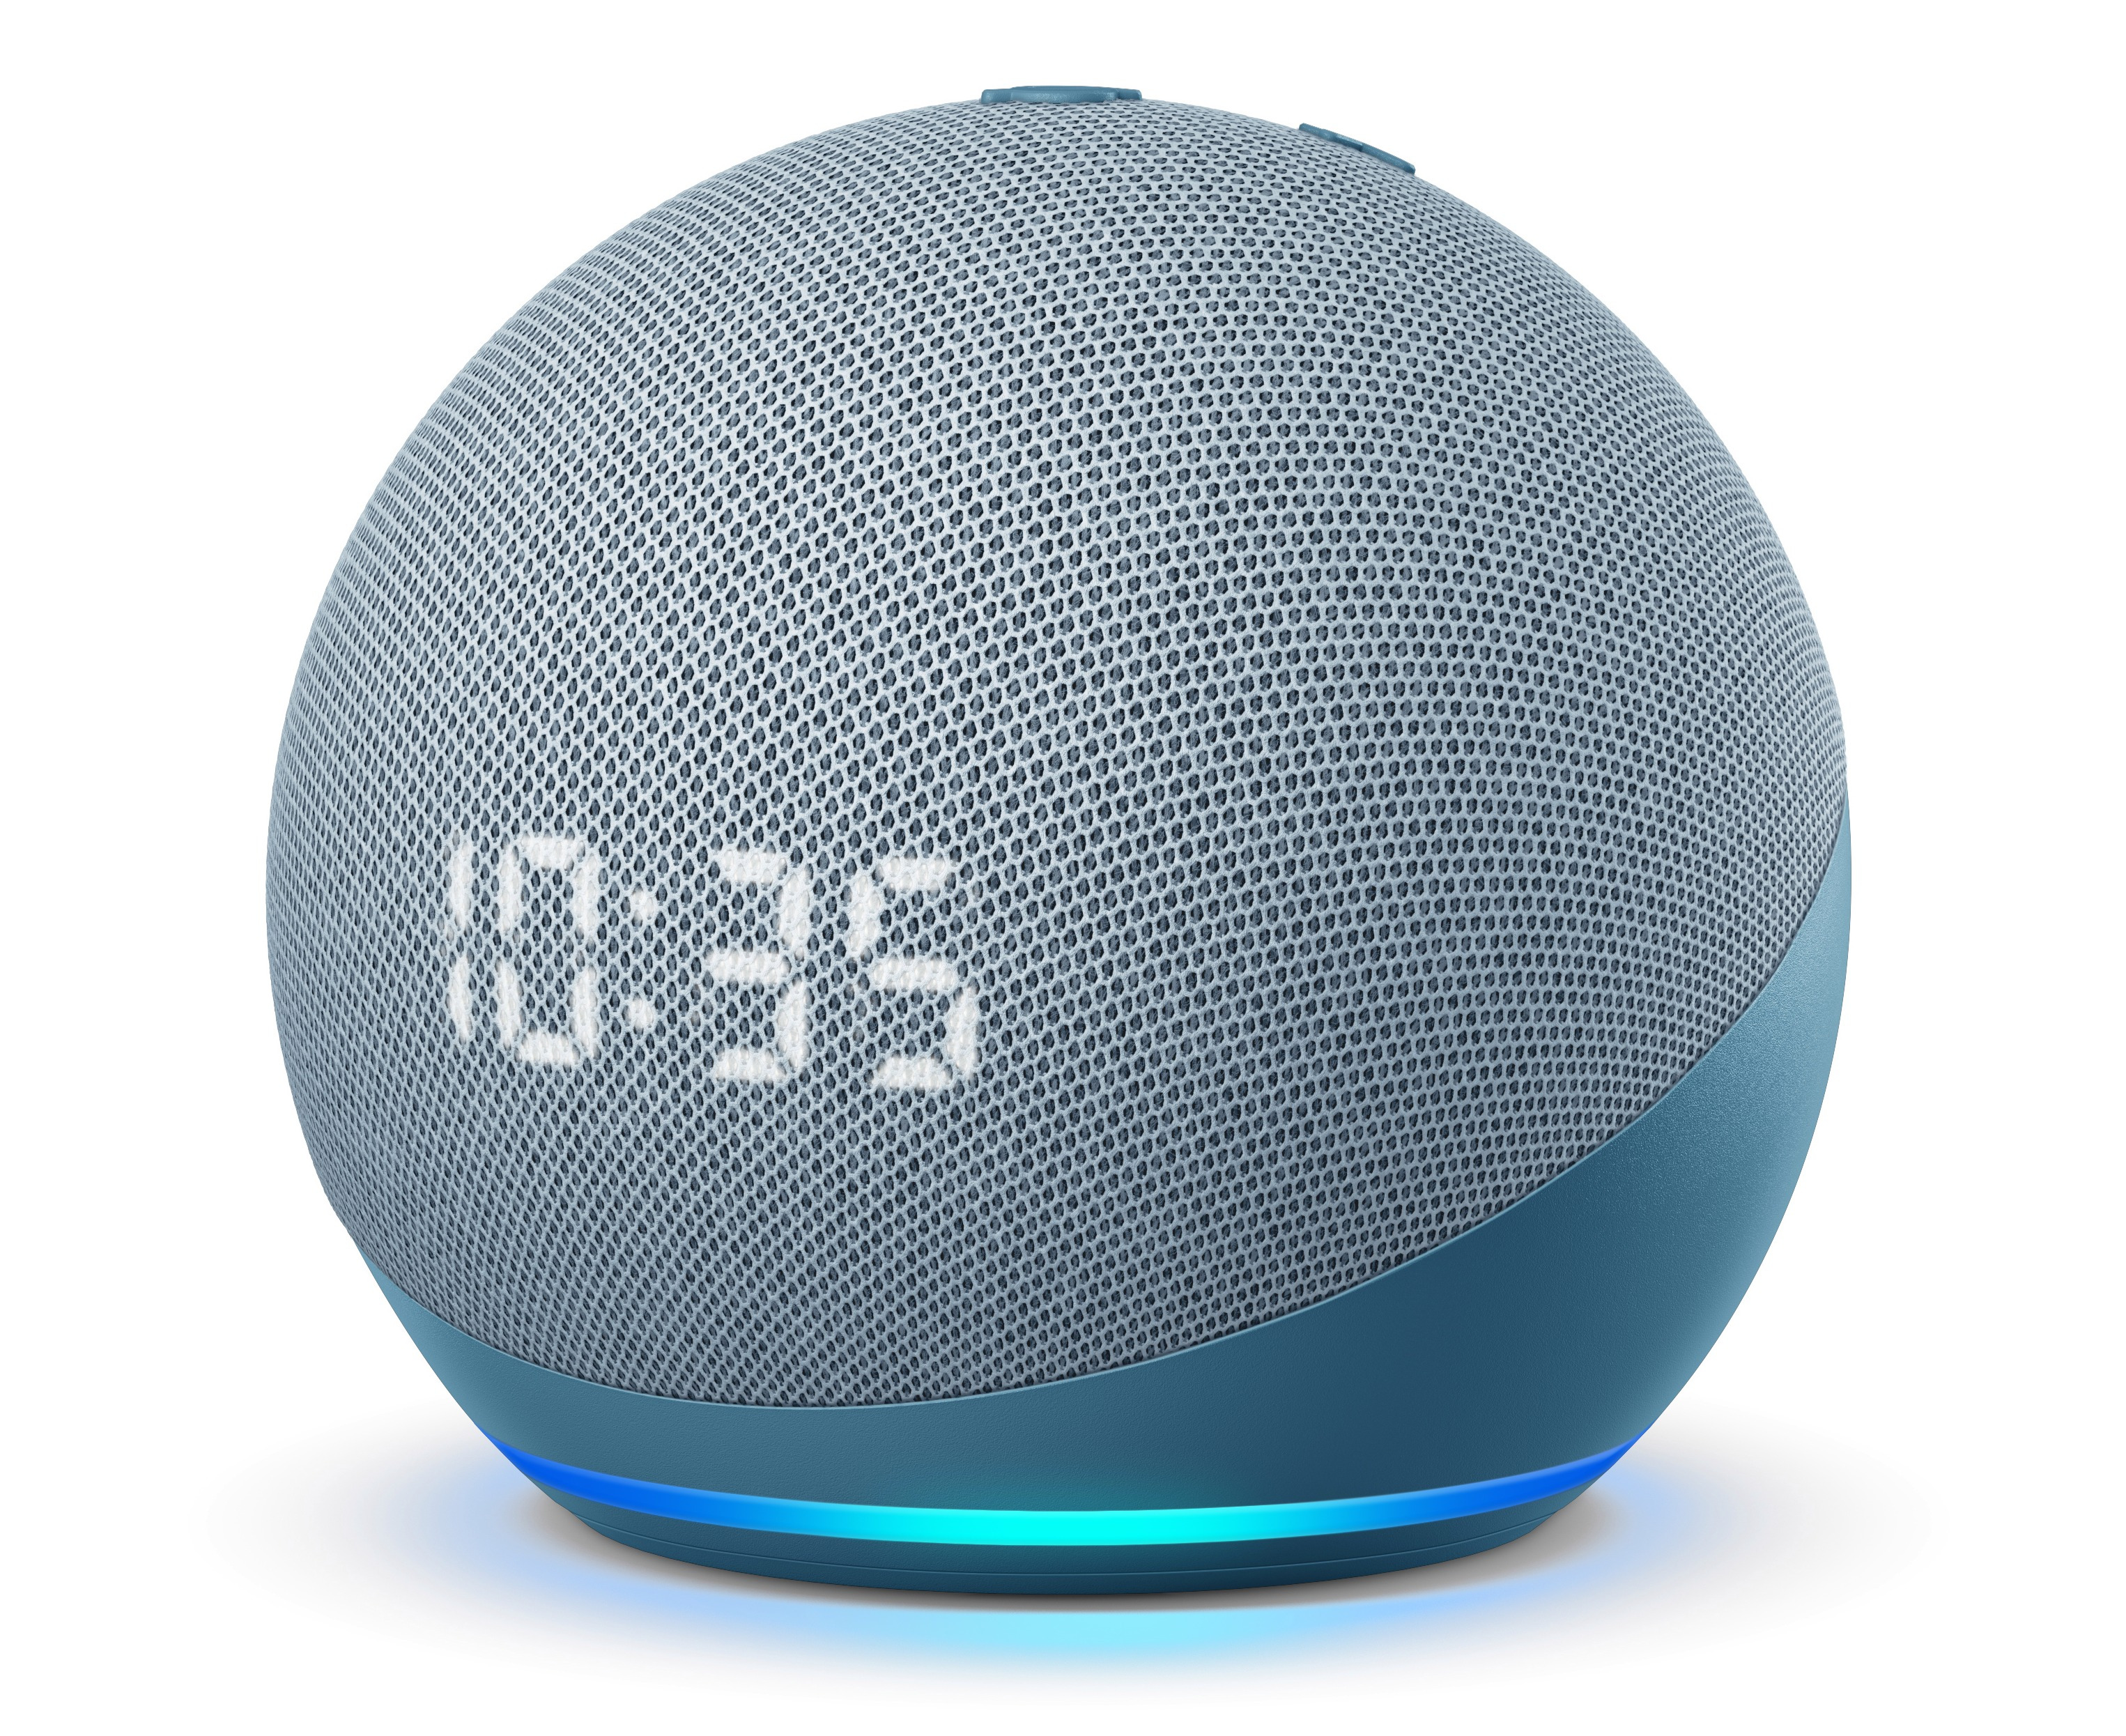 Dot is the top seller of the Echo family and now it's spherical